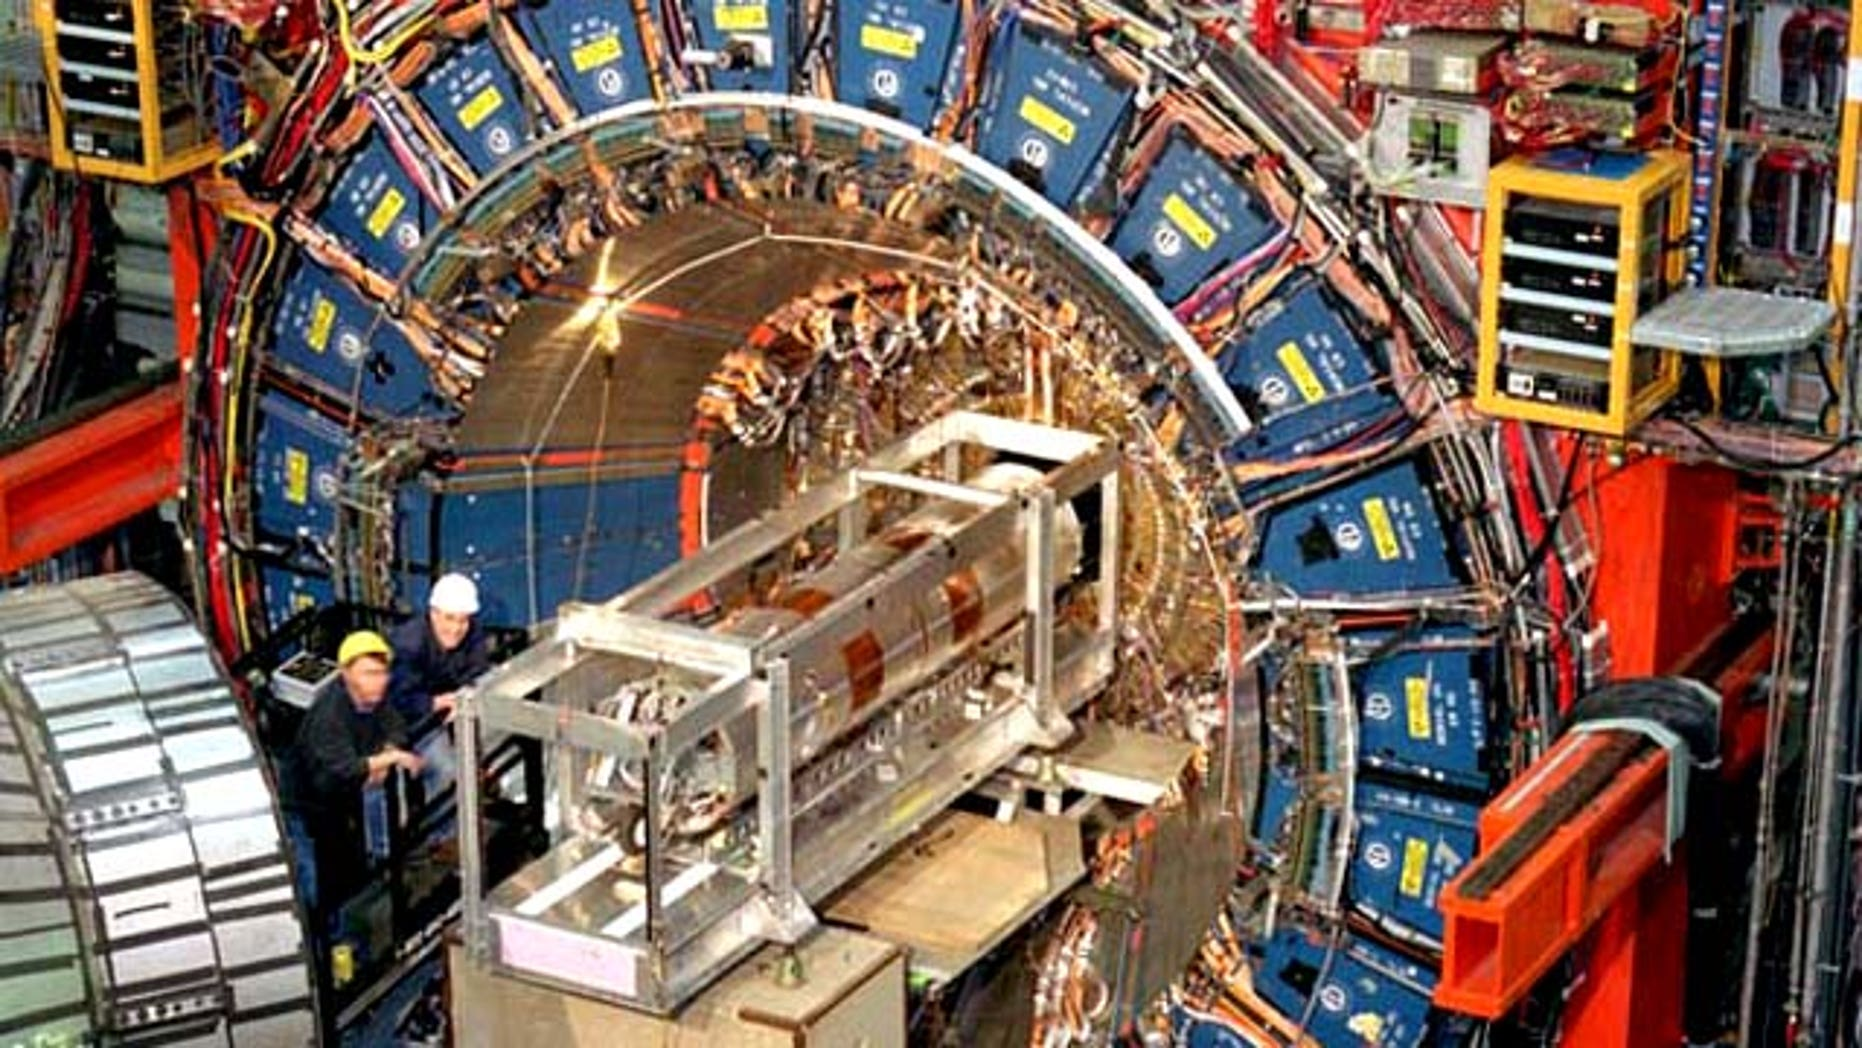 """The CDF detector at U.S. science facility Fermilab. About the size of a three-story house, and weighing about 6,000 tons, it records the """"debris"""" emerging from each high-energy proton-antiproton collision produced by the Tevatron particle colider."""